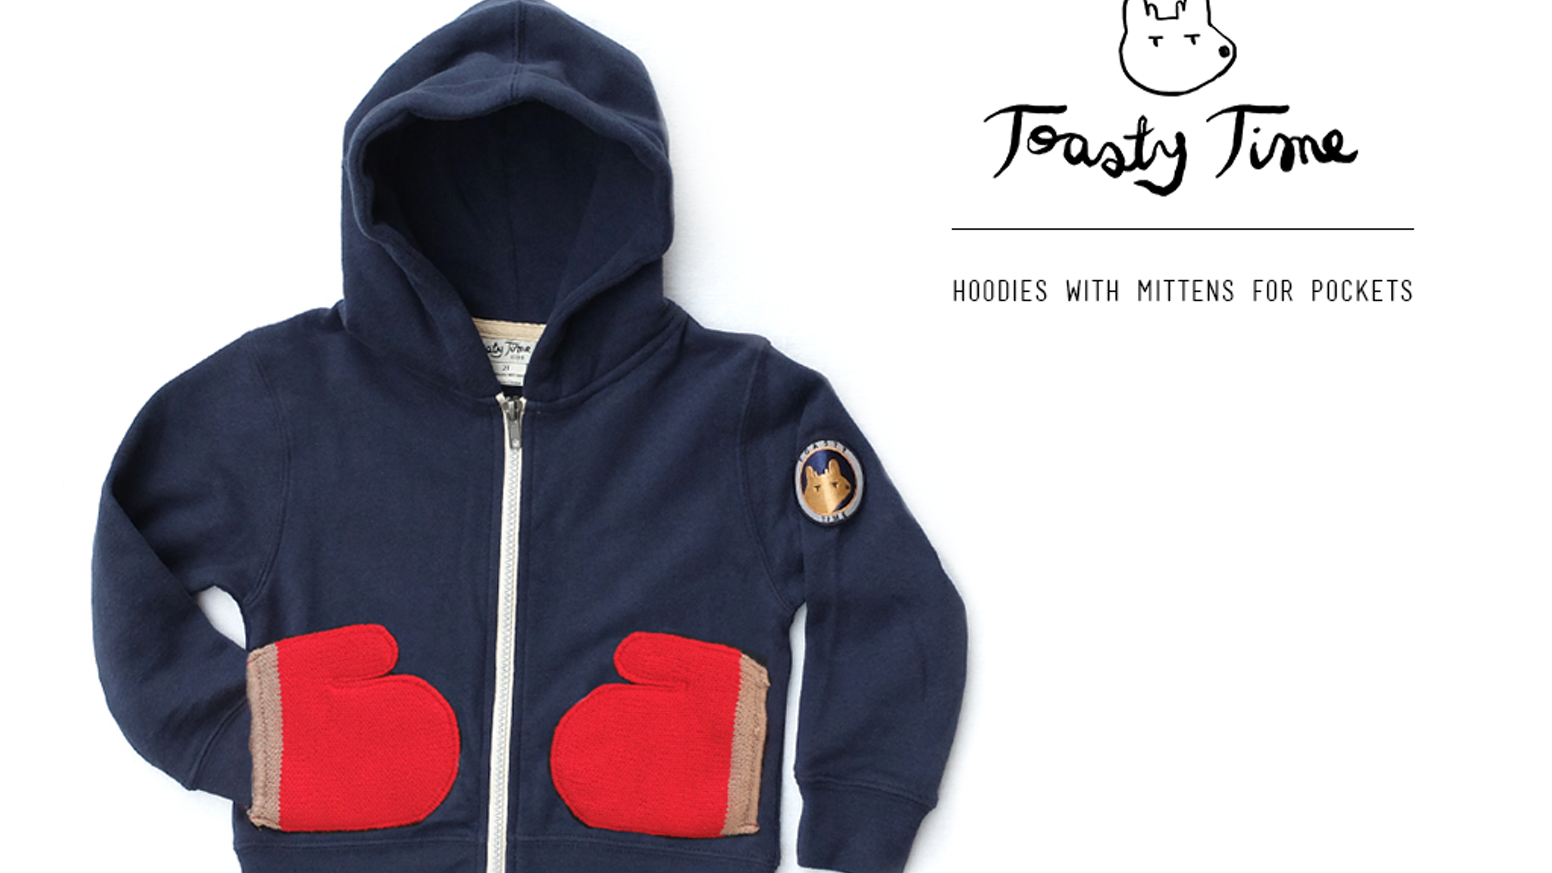 Toasty Time hoodies are the world's most toastiest garment. We've been keeping grown-ups toasty since 2007. Kickstarter helped us expand our line for a smaller audience: kids!